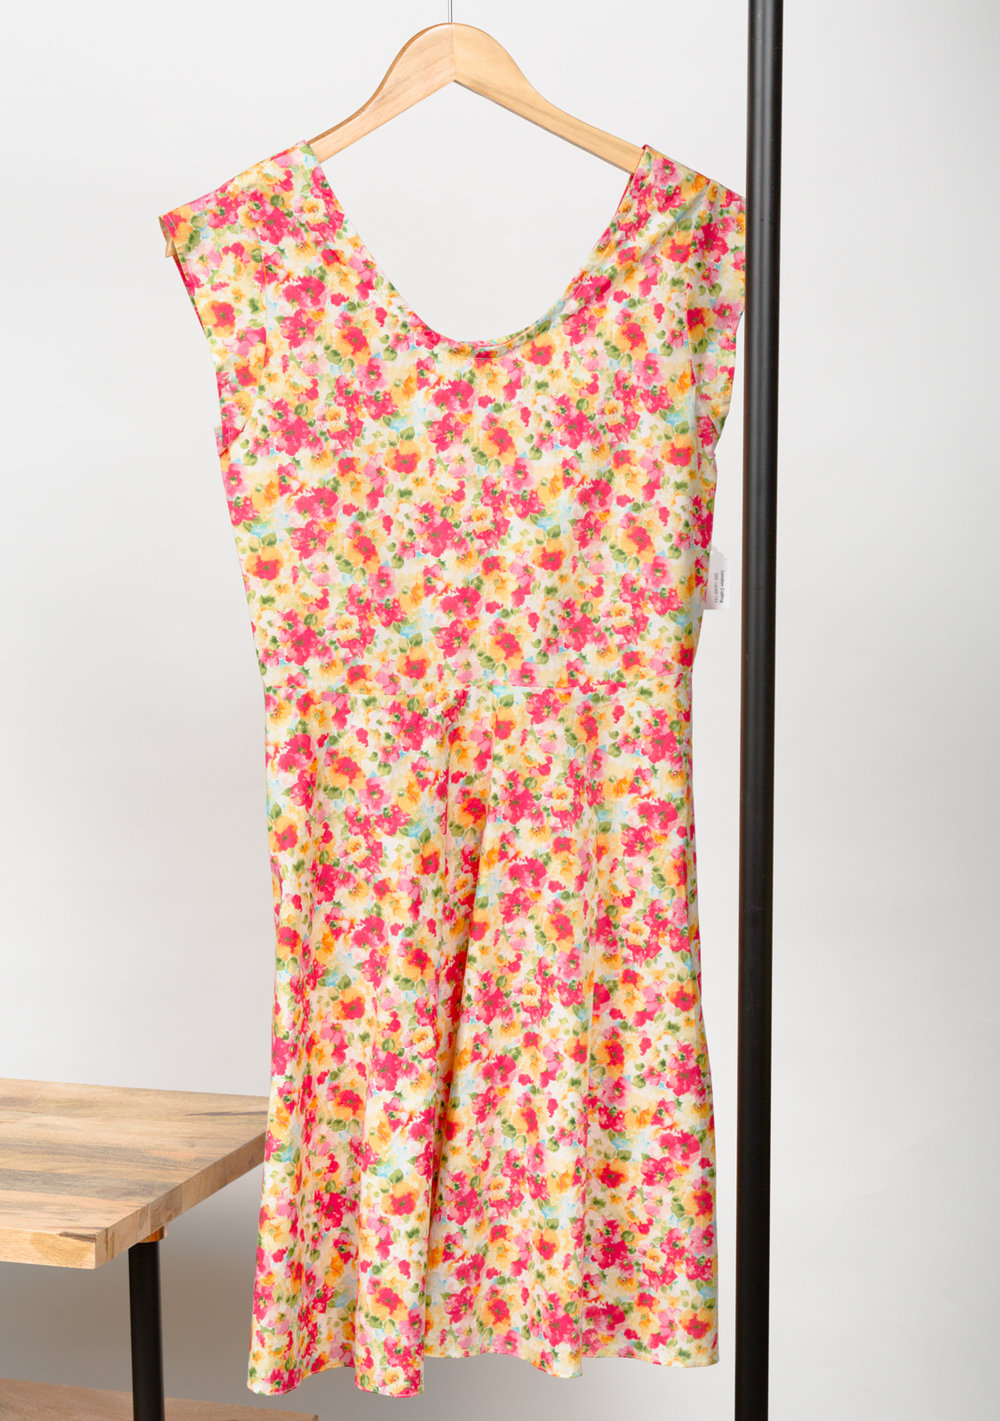 SWEET SUMMERTIME DRESS DESIGNED BY SEW TO GROW, MADE BY RAMONA ROSE,  FEATURING LONDON CALLING